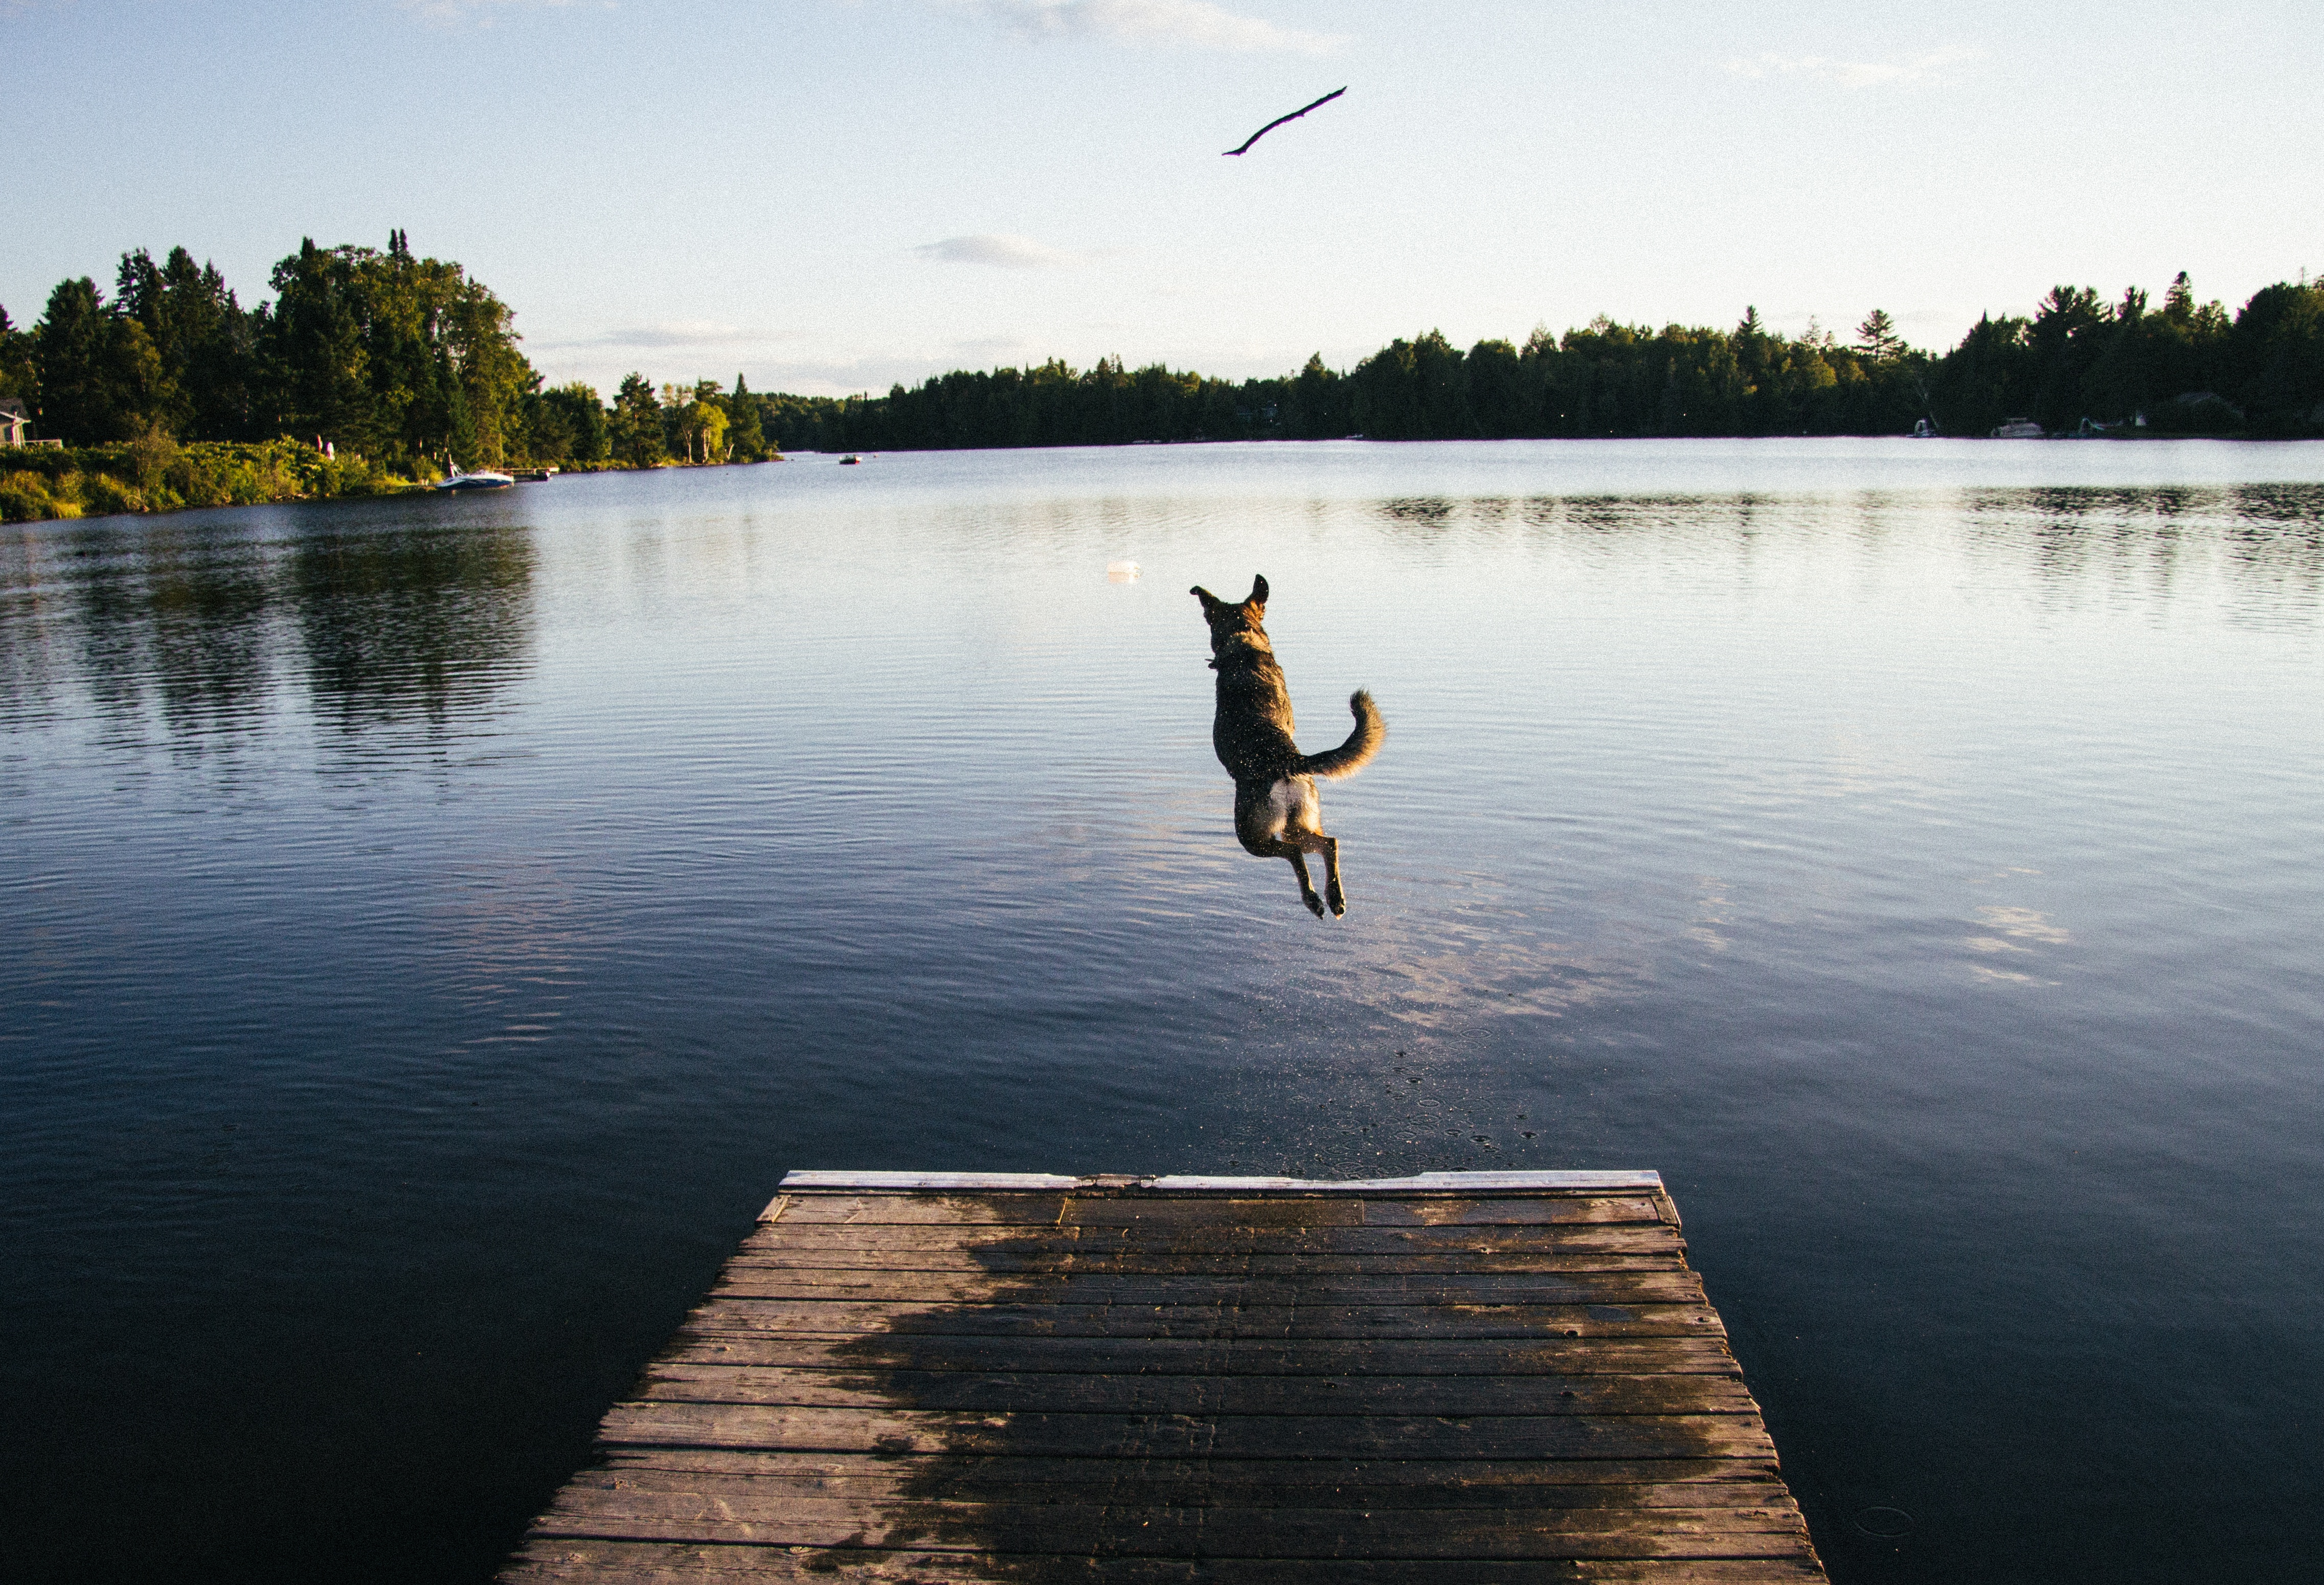 dog-jumping-off-dock-with-no-more-questions-about-what-its-like-being-a-writer-for-Verblio